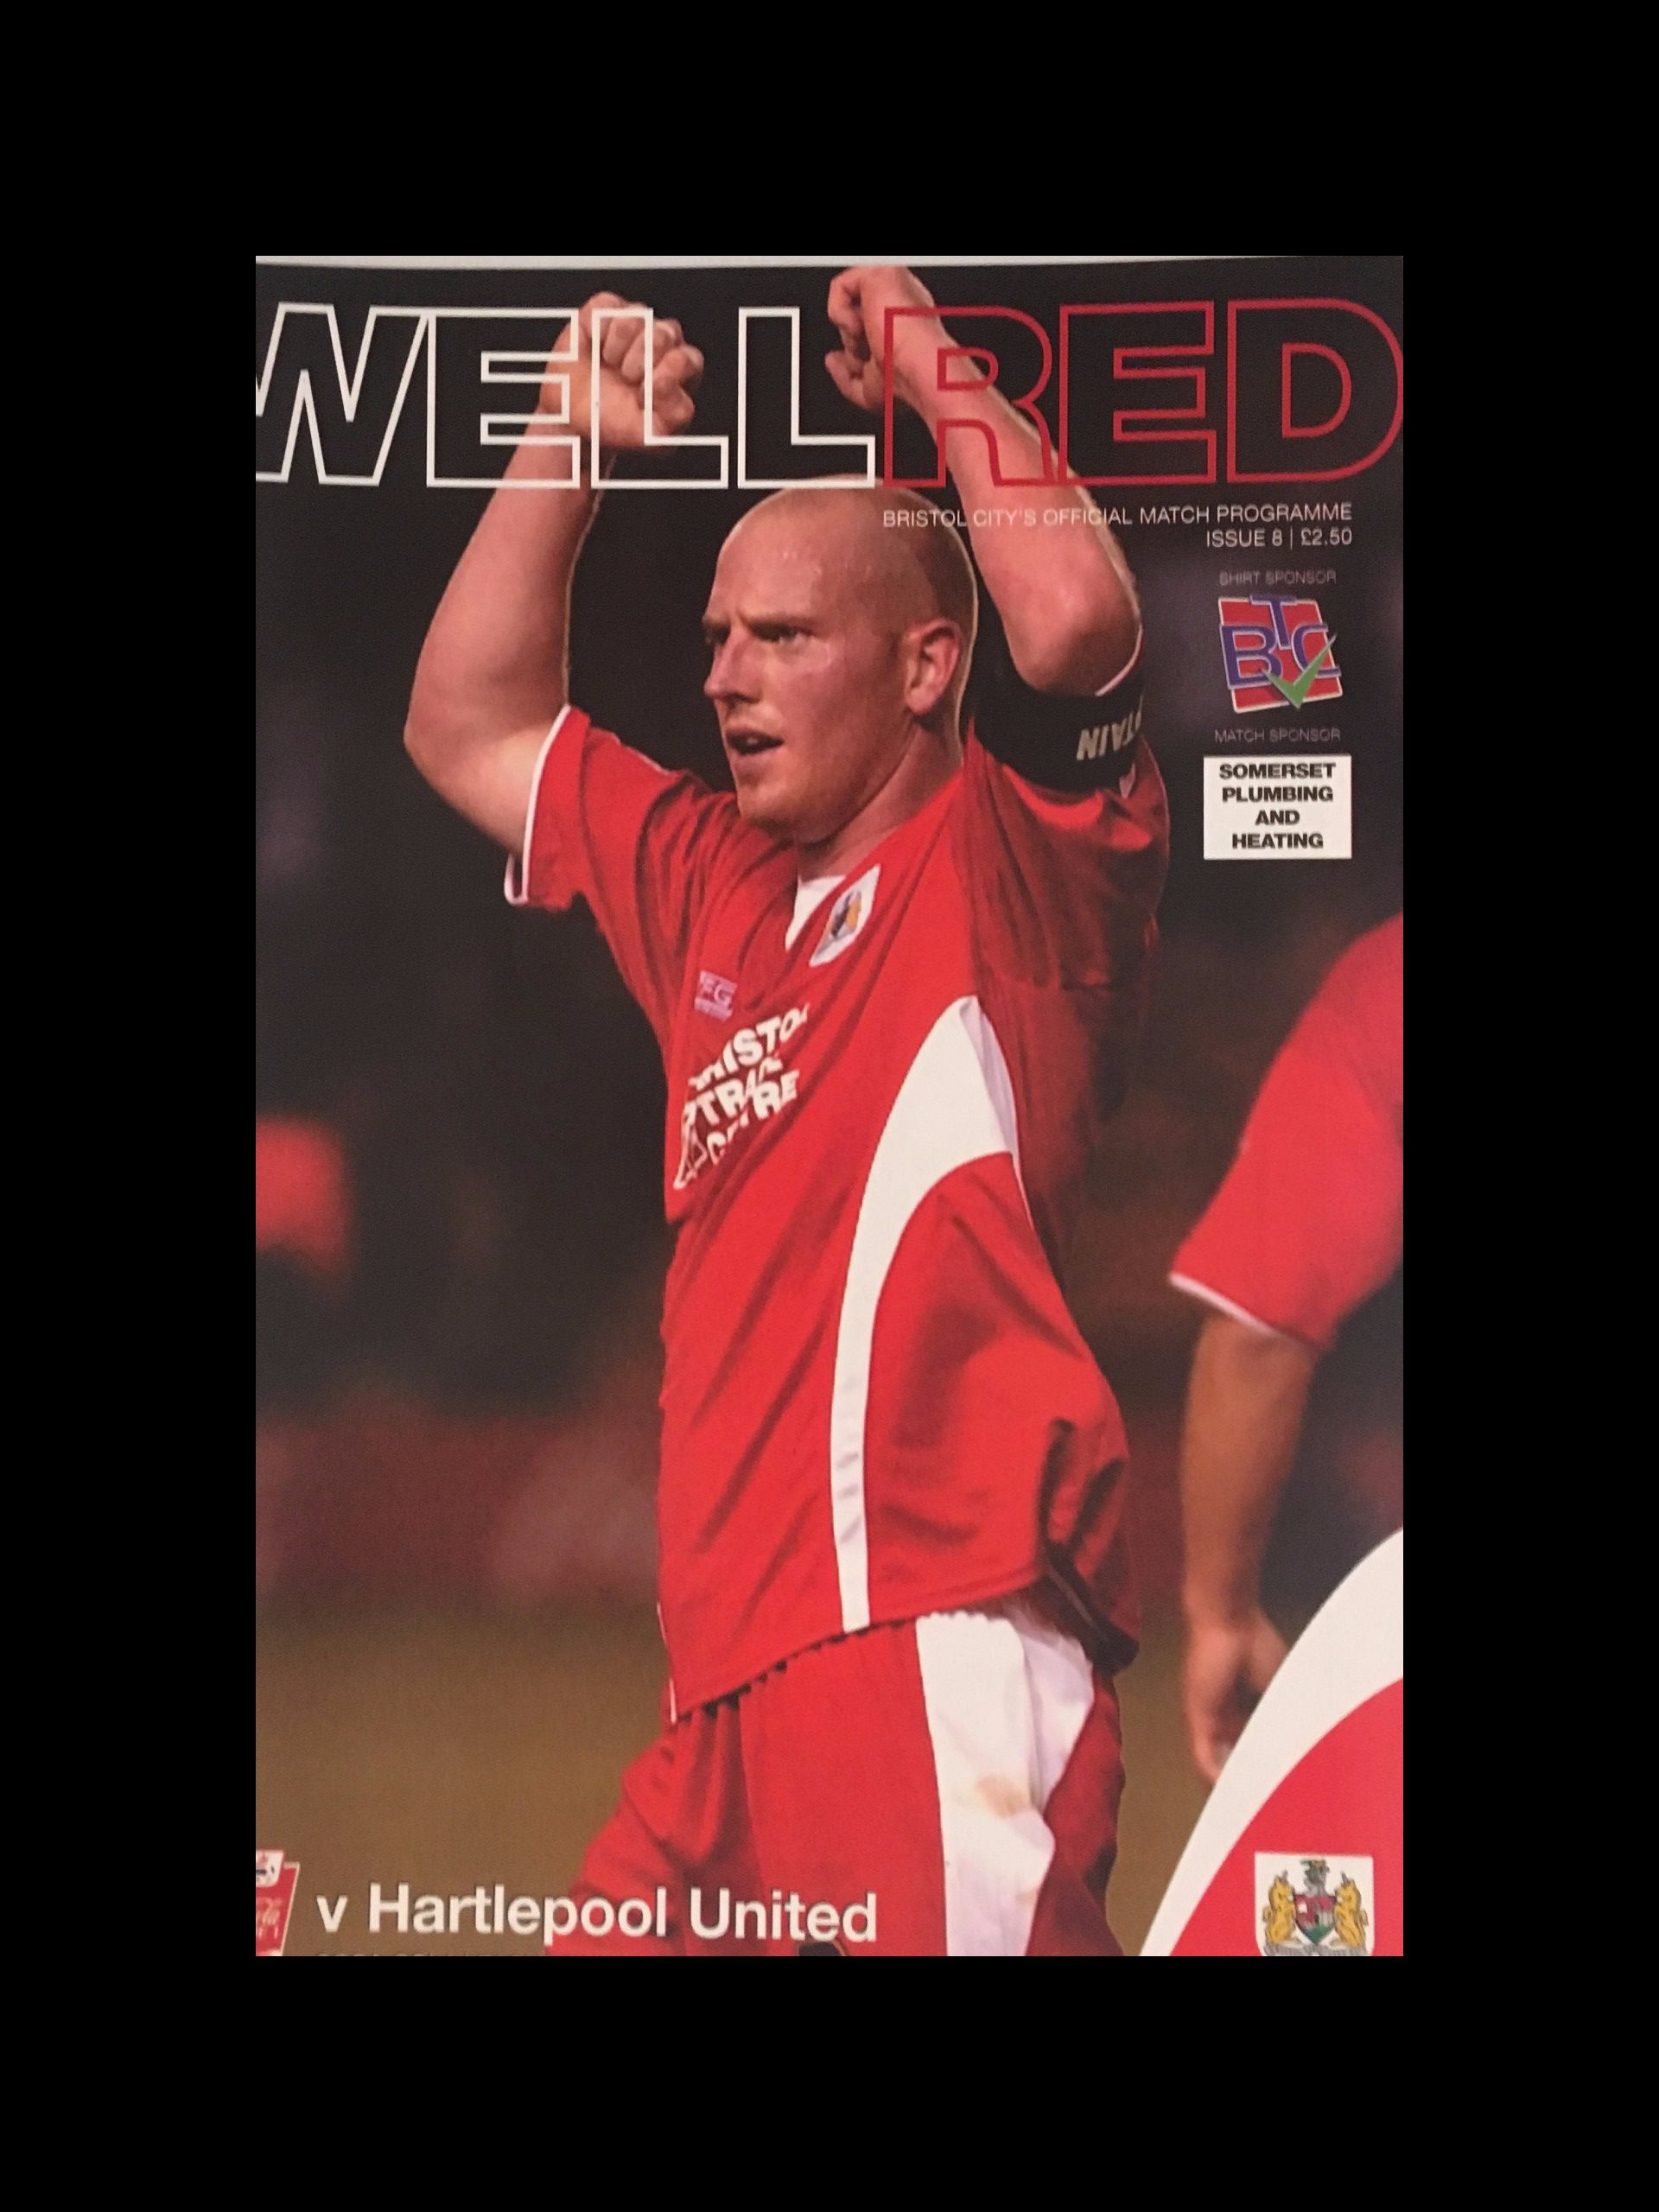 Bristol City v Hartlepool United 01-10-2005 Programme